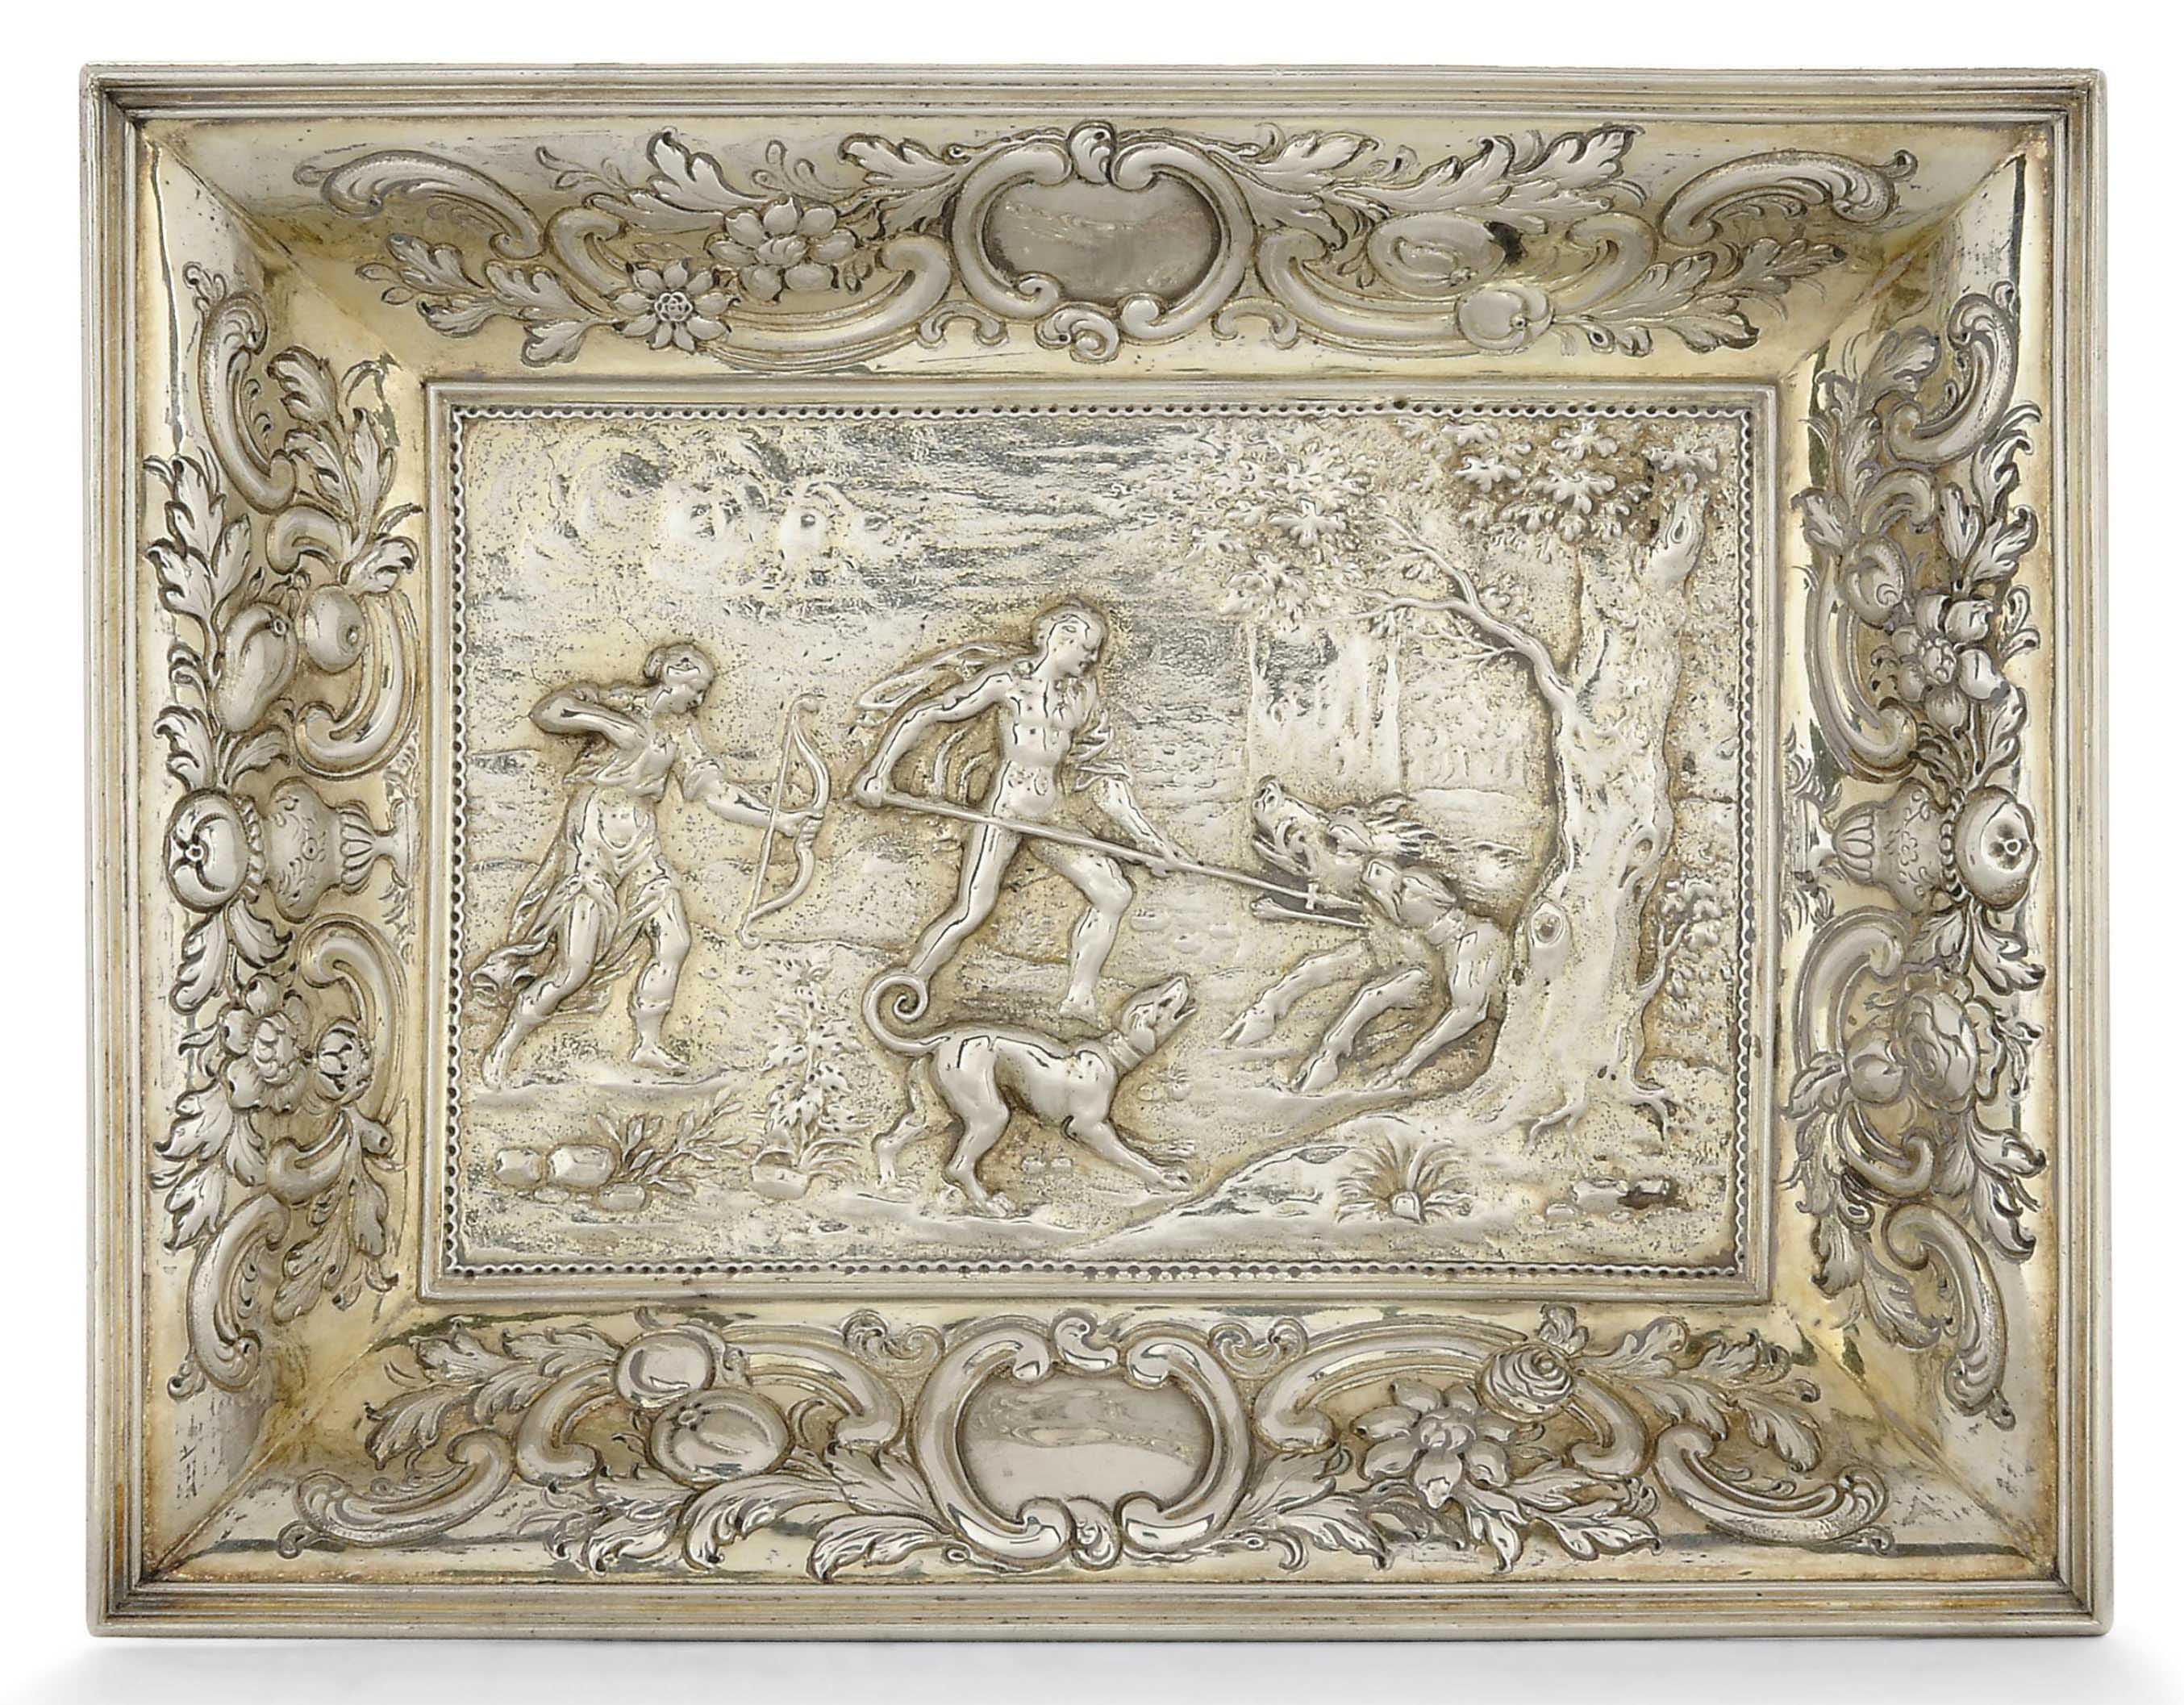 A GEORGE III SILVER-GILT DRESSING TABLE TRAY